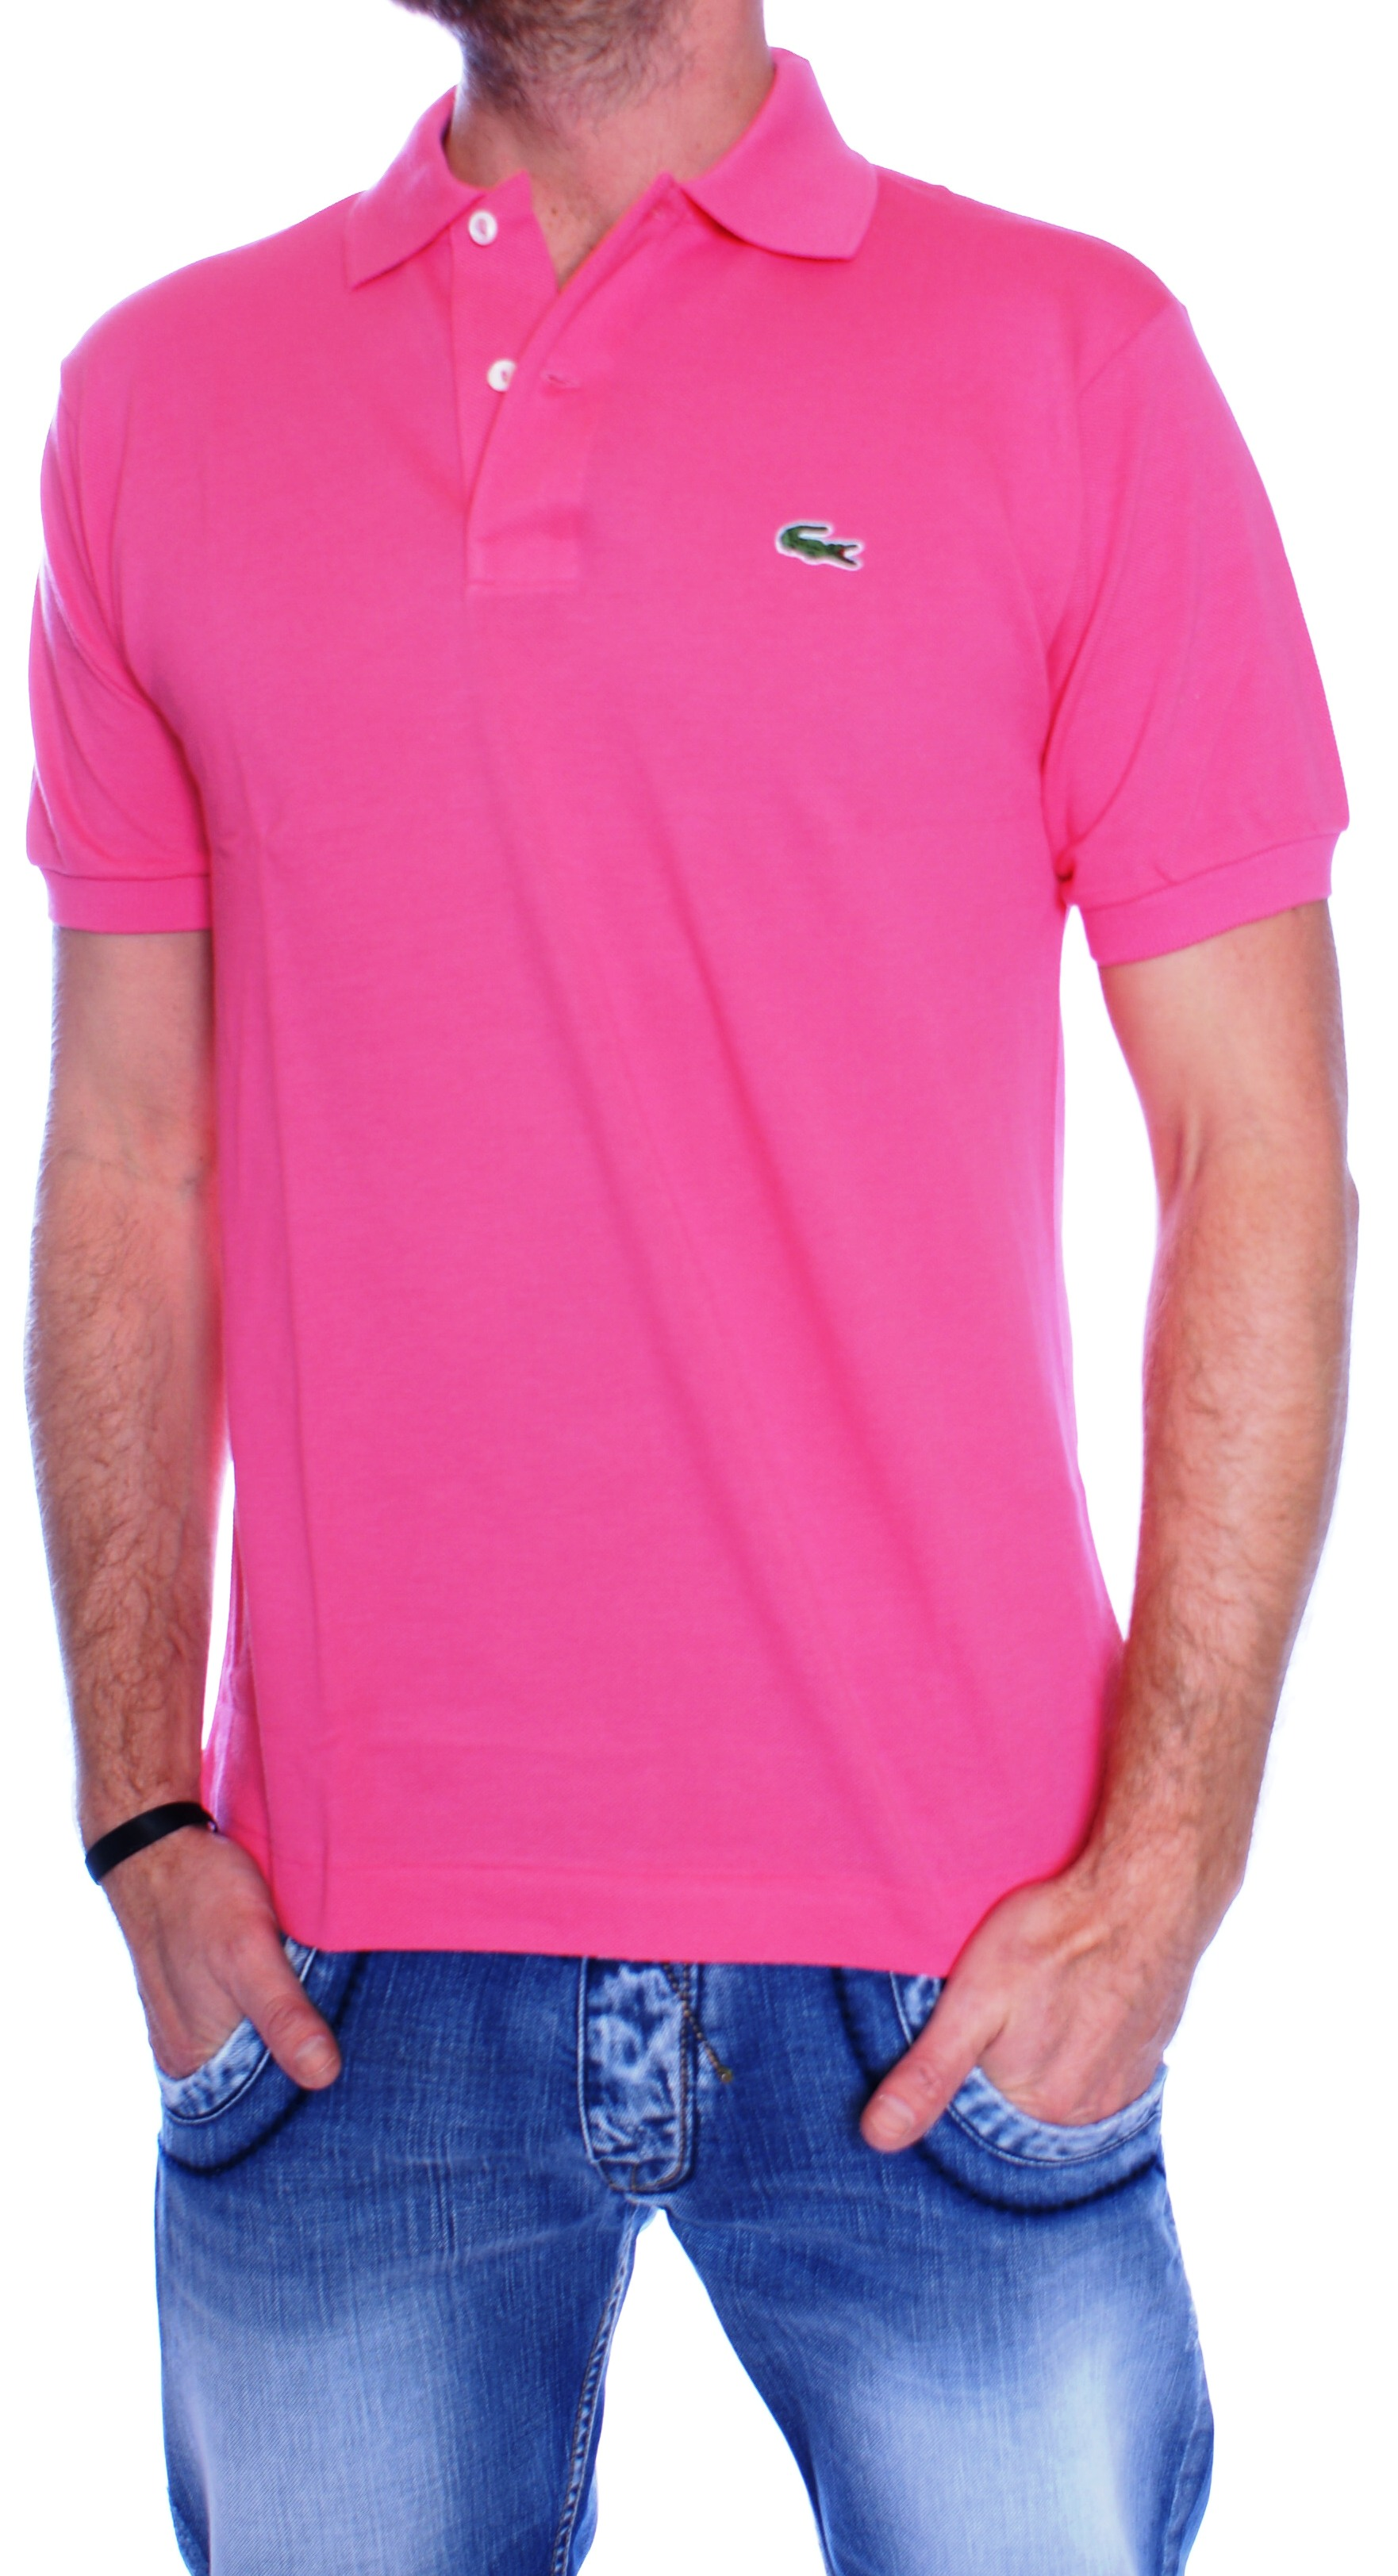 upload/product_display_image/201211/caiman20lacoste20sorbet20a.jpg